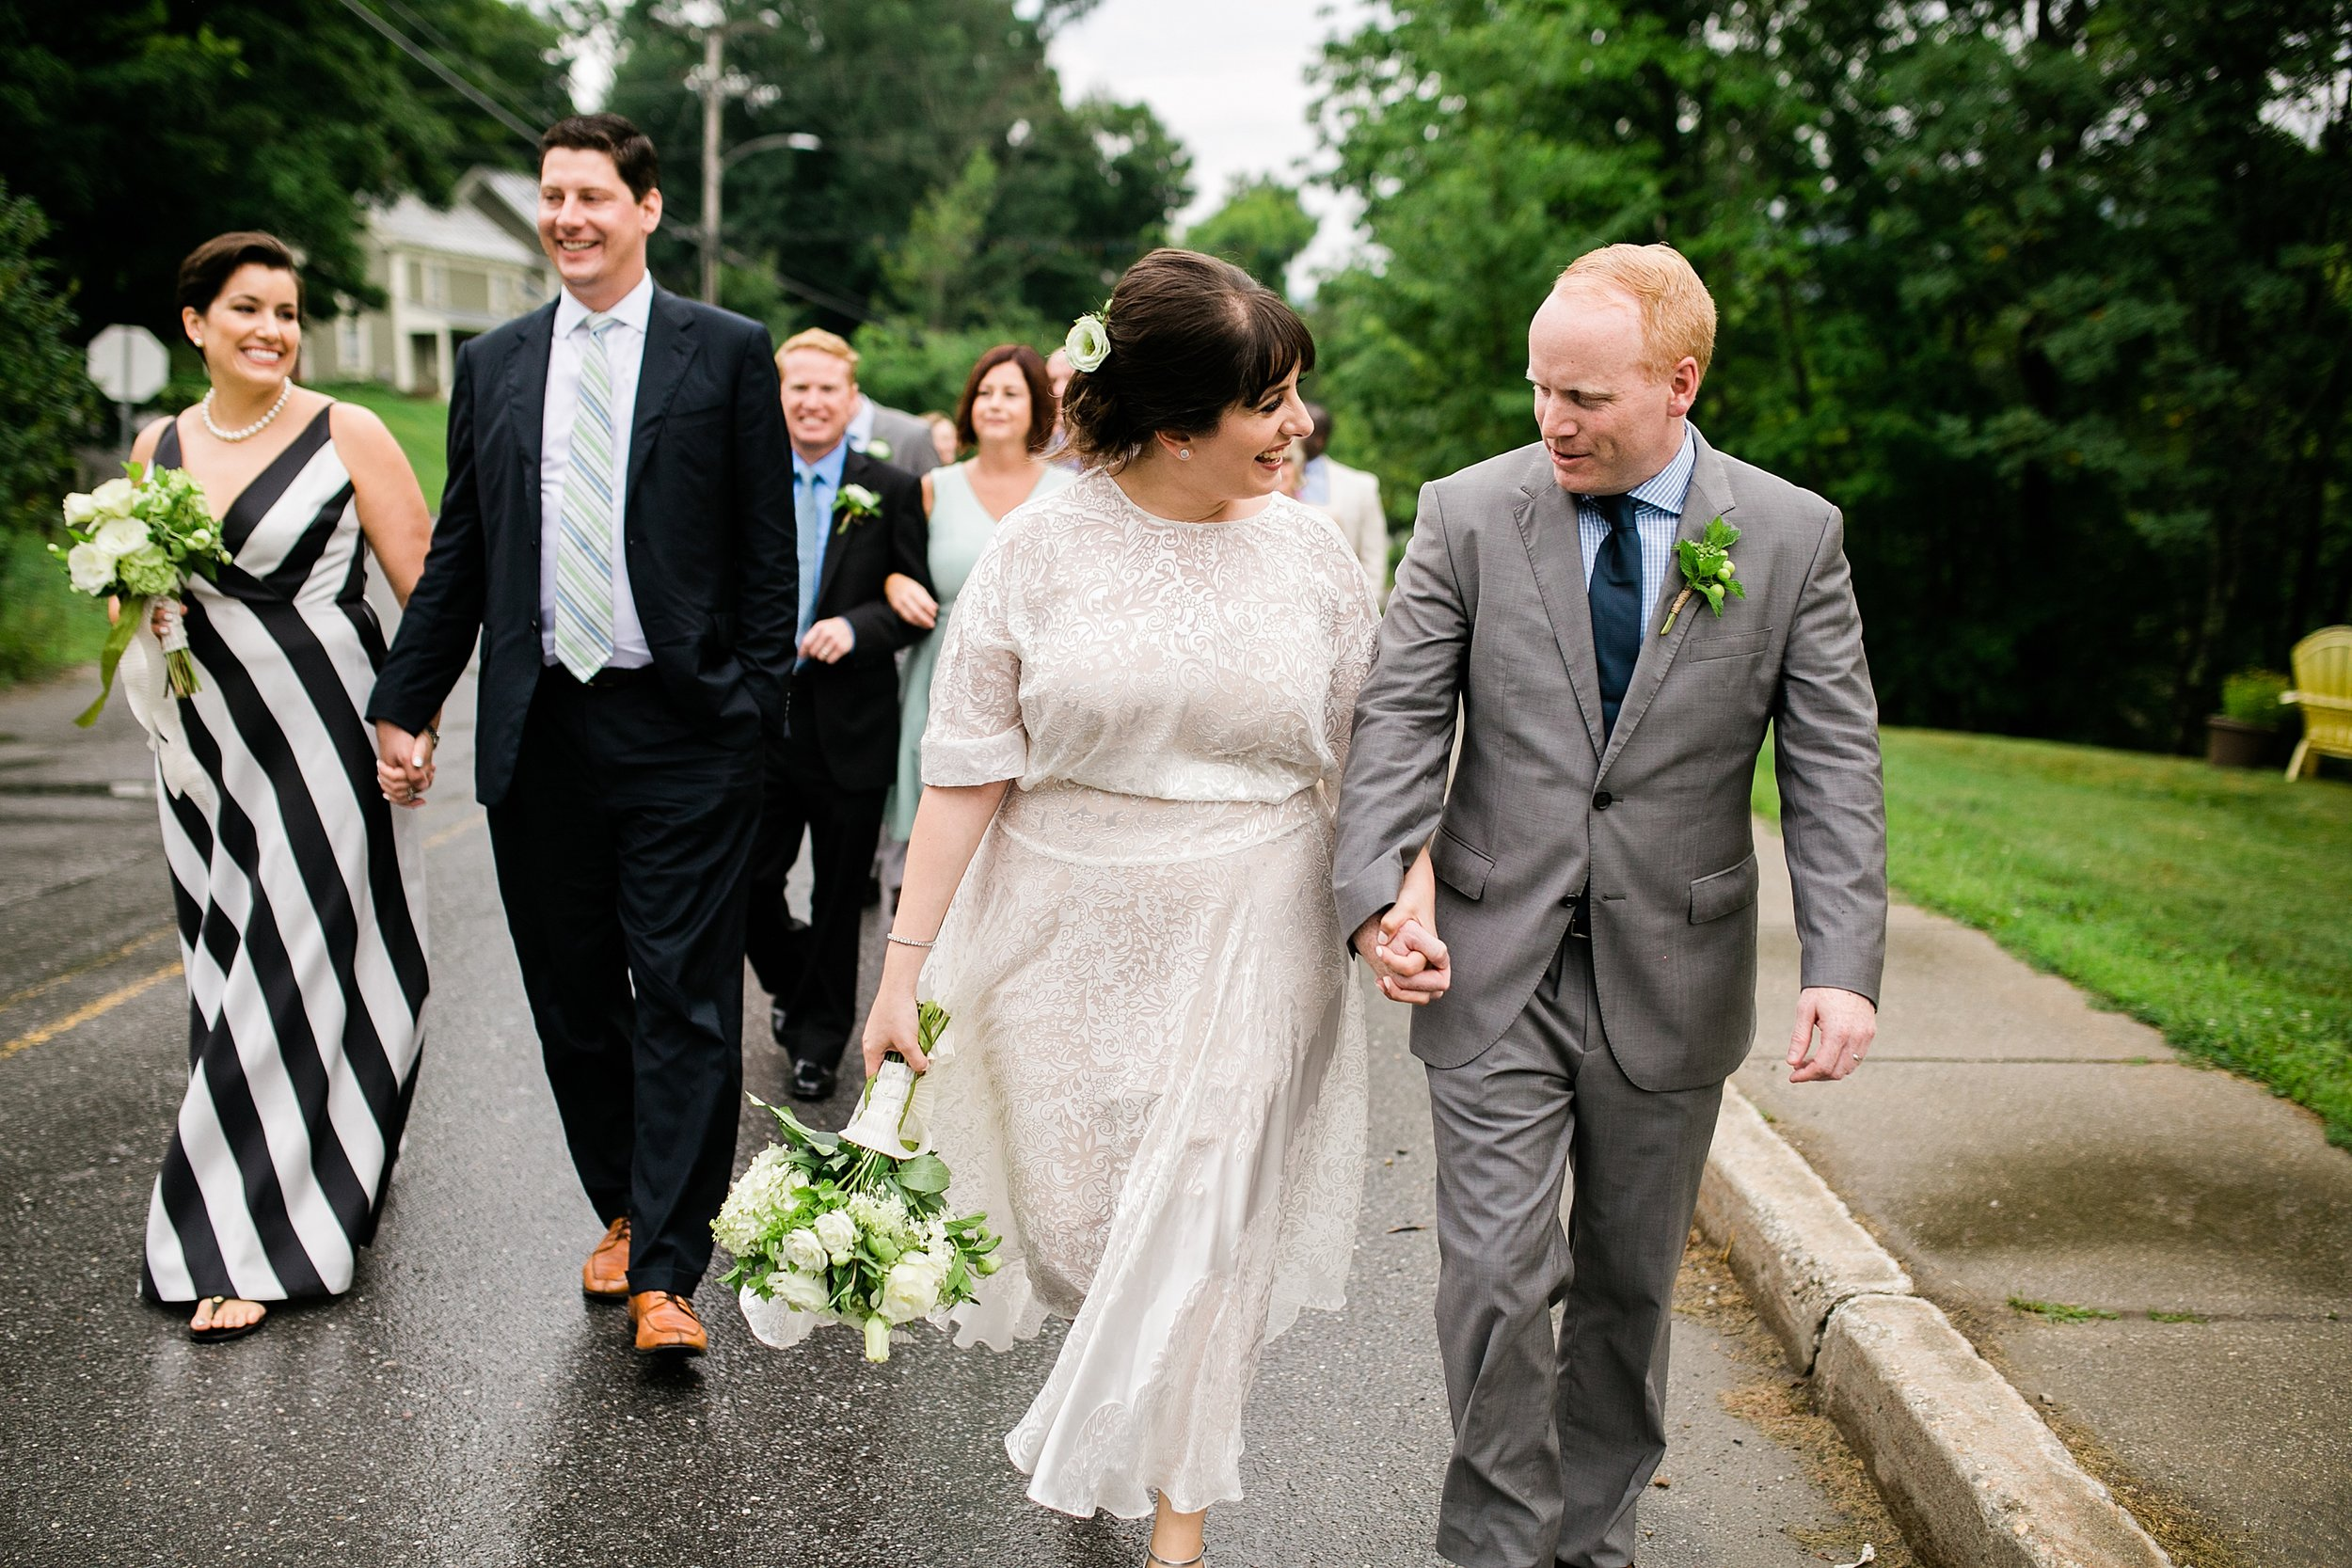 039-los-angeles-wedding-photography-todd-danforth-vermont.jpg